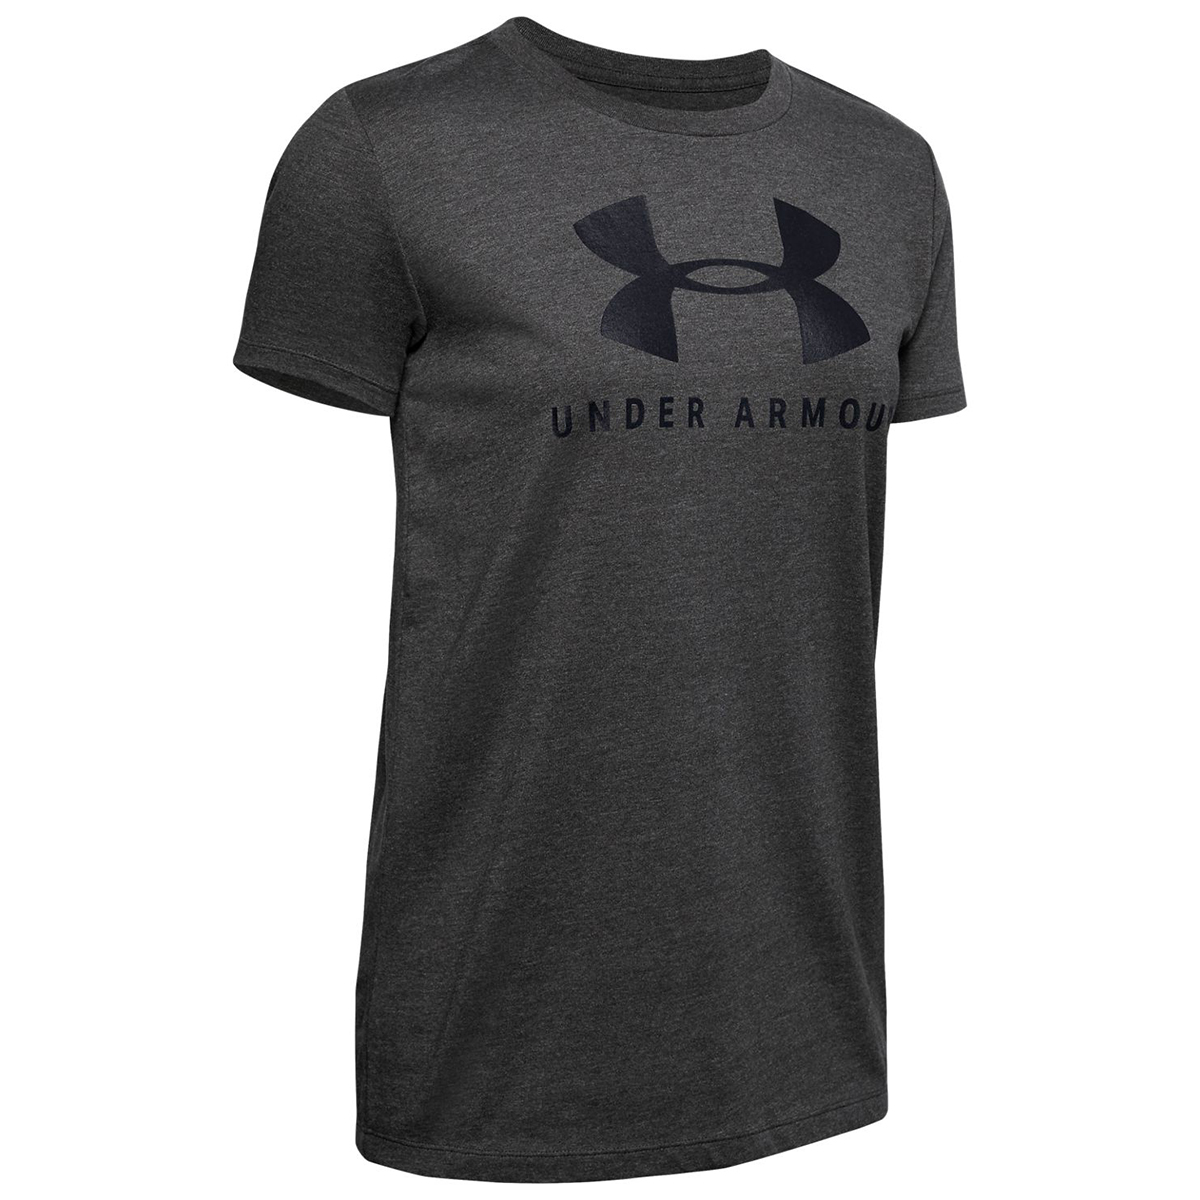 Under Armour Women's Ua Graphic Sportstyle Classic Short-Sleeve Tee - Black, S